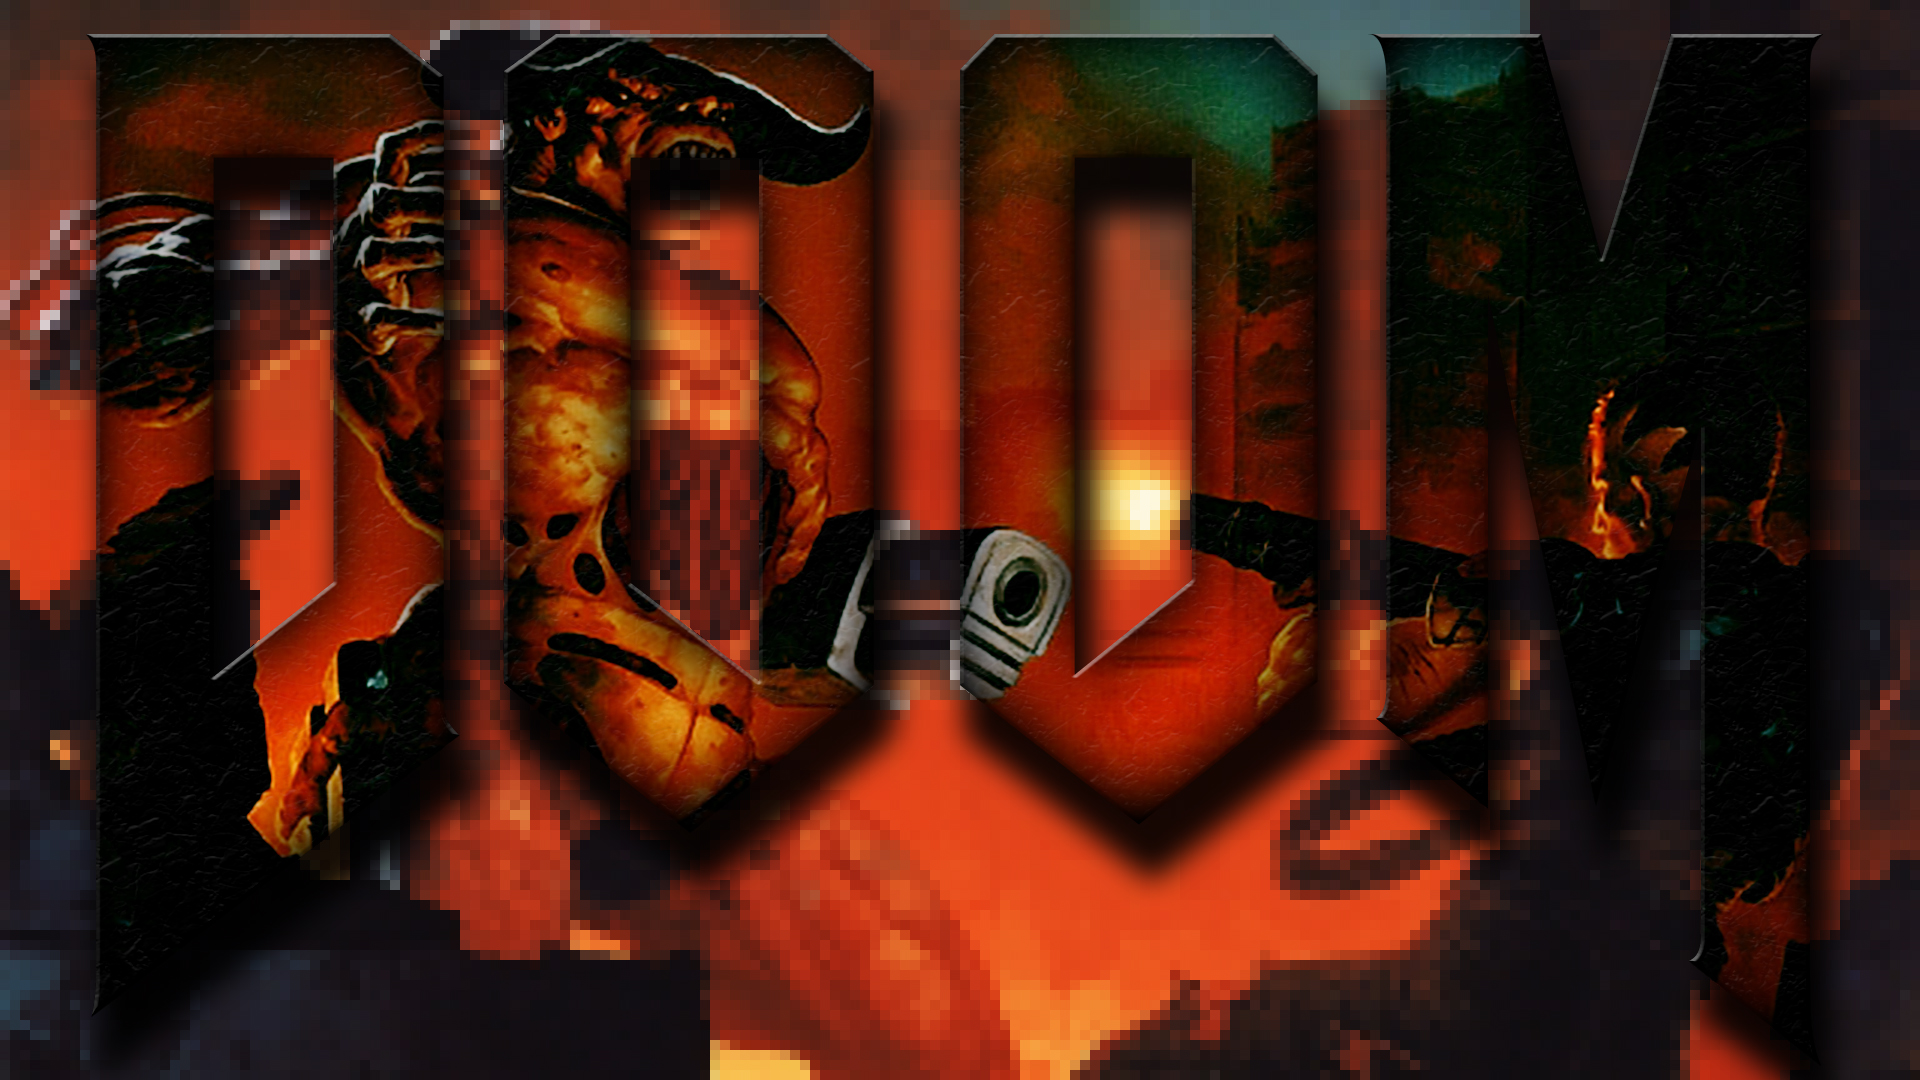 doom-II 1920 x 1080 wall by imaximus